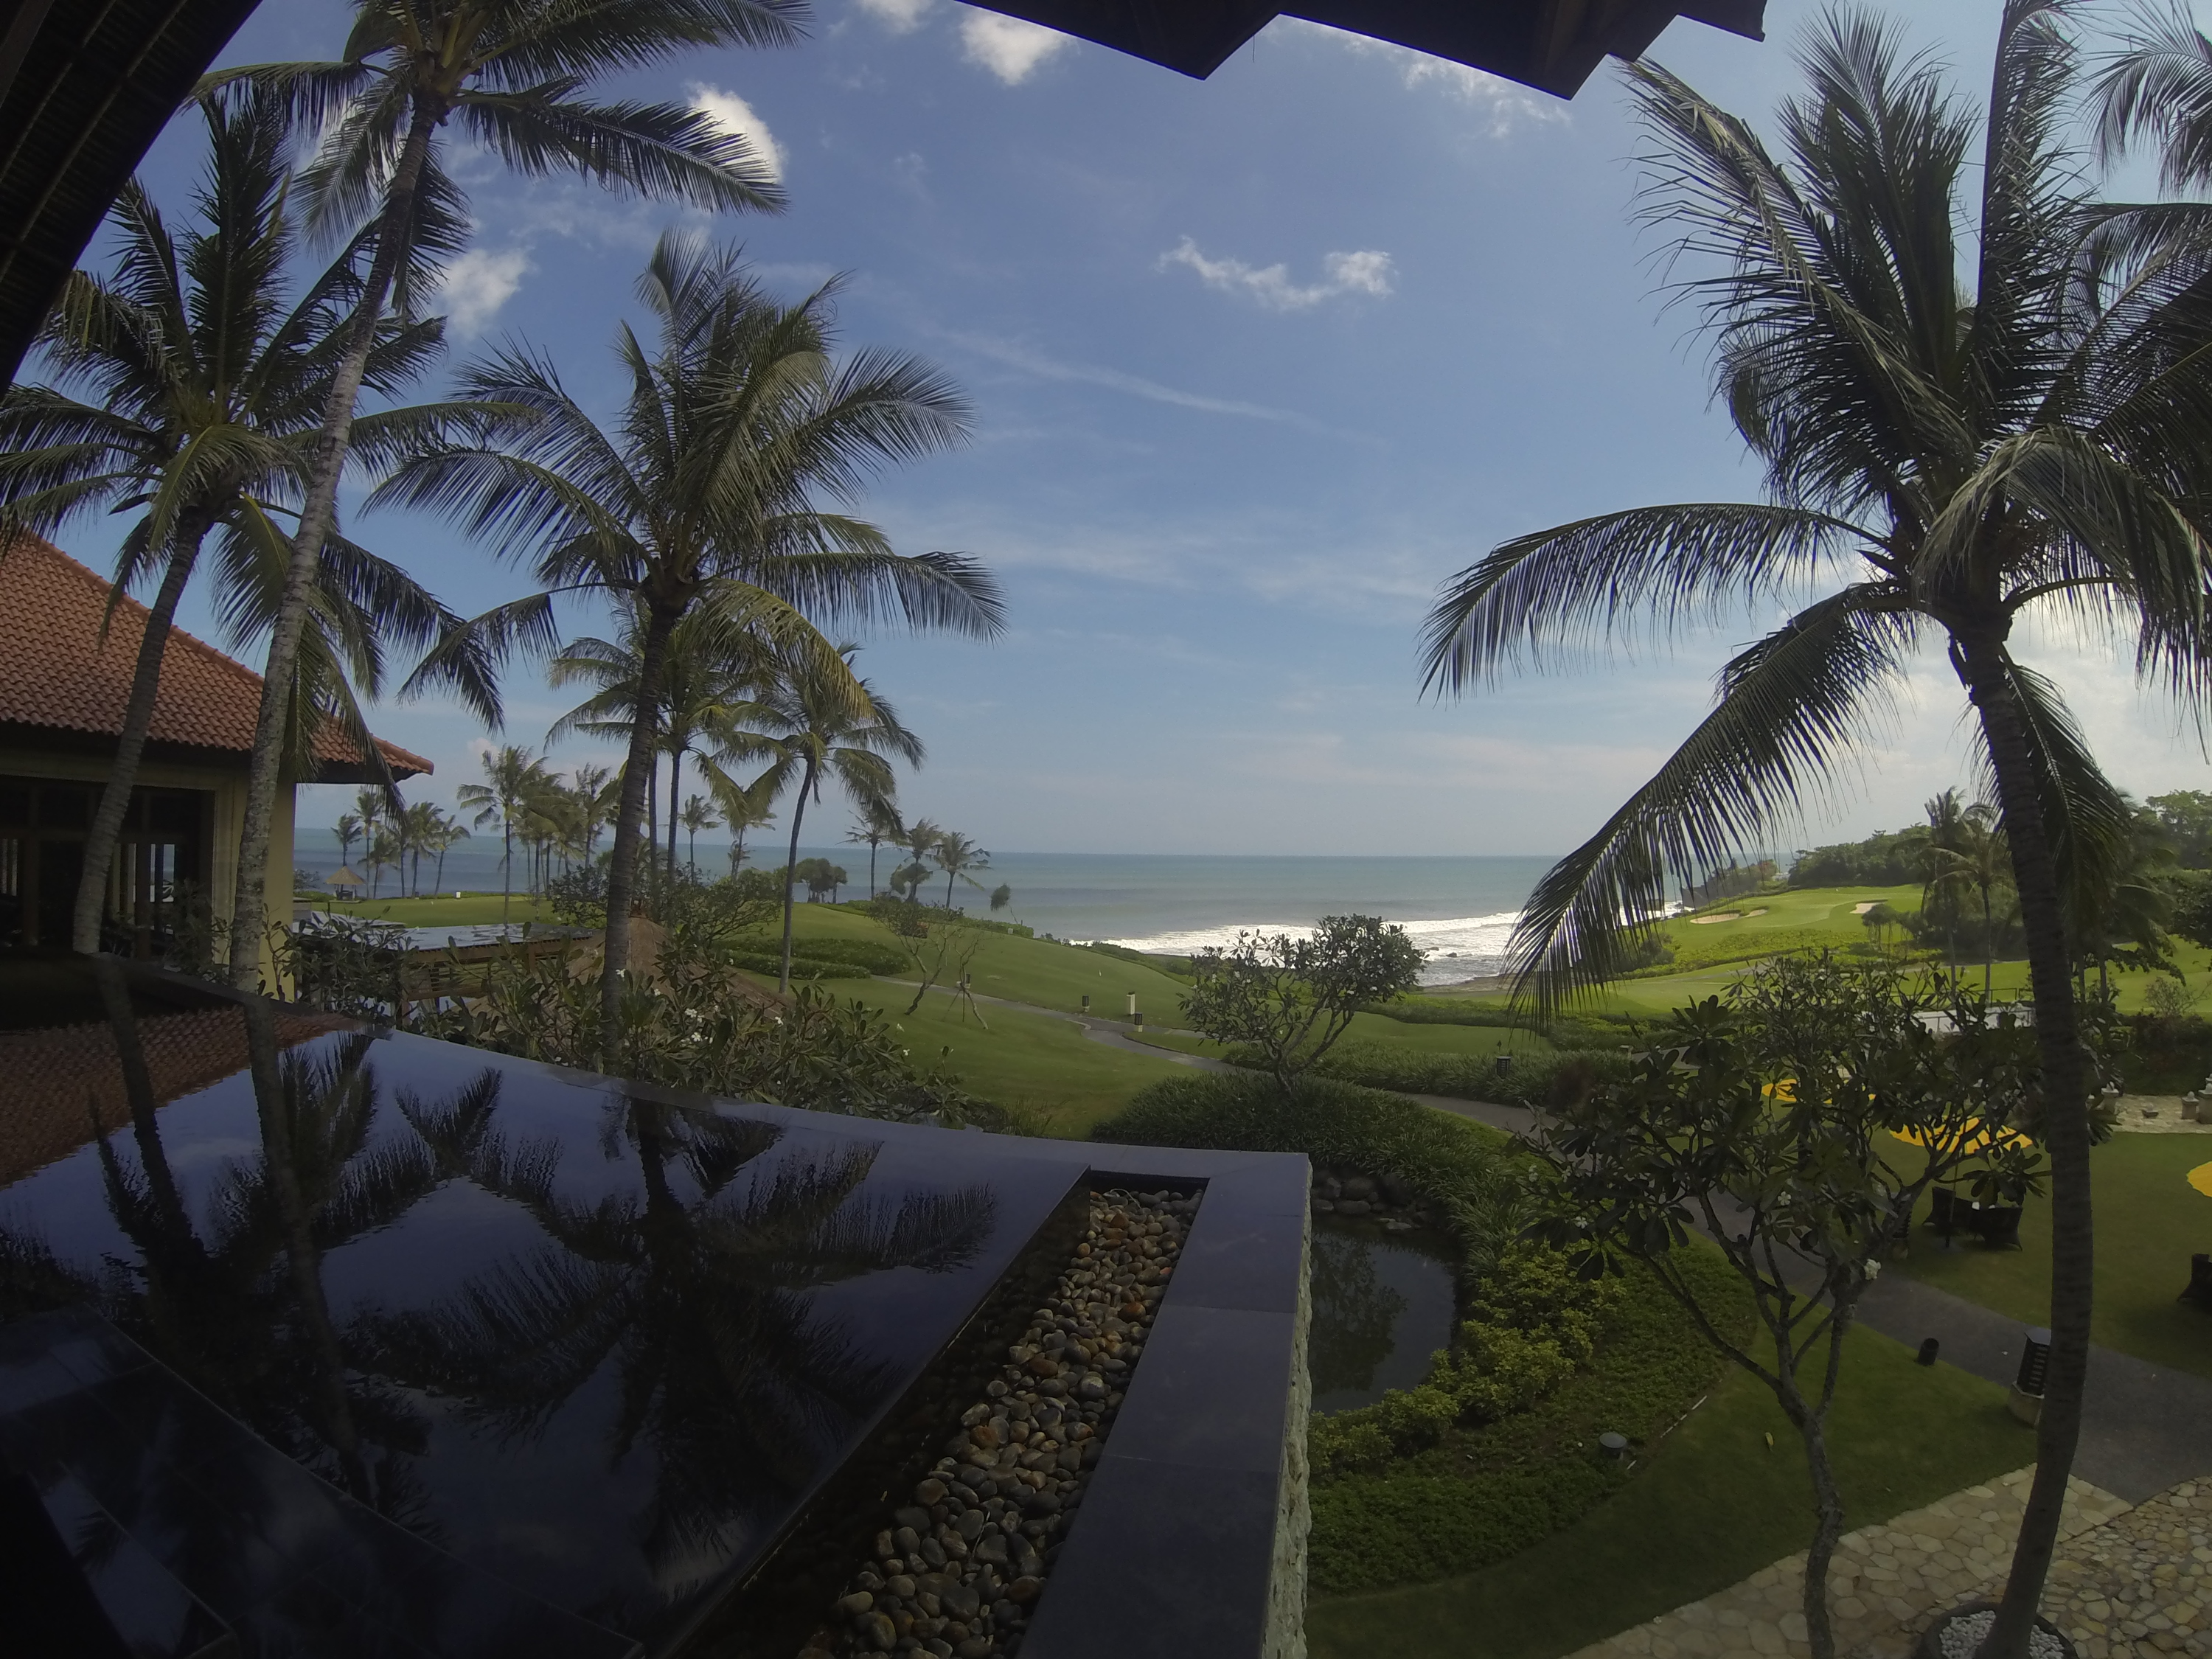 Bali – Part One // GoPro Video